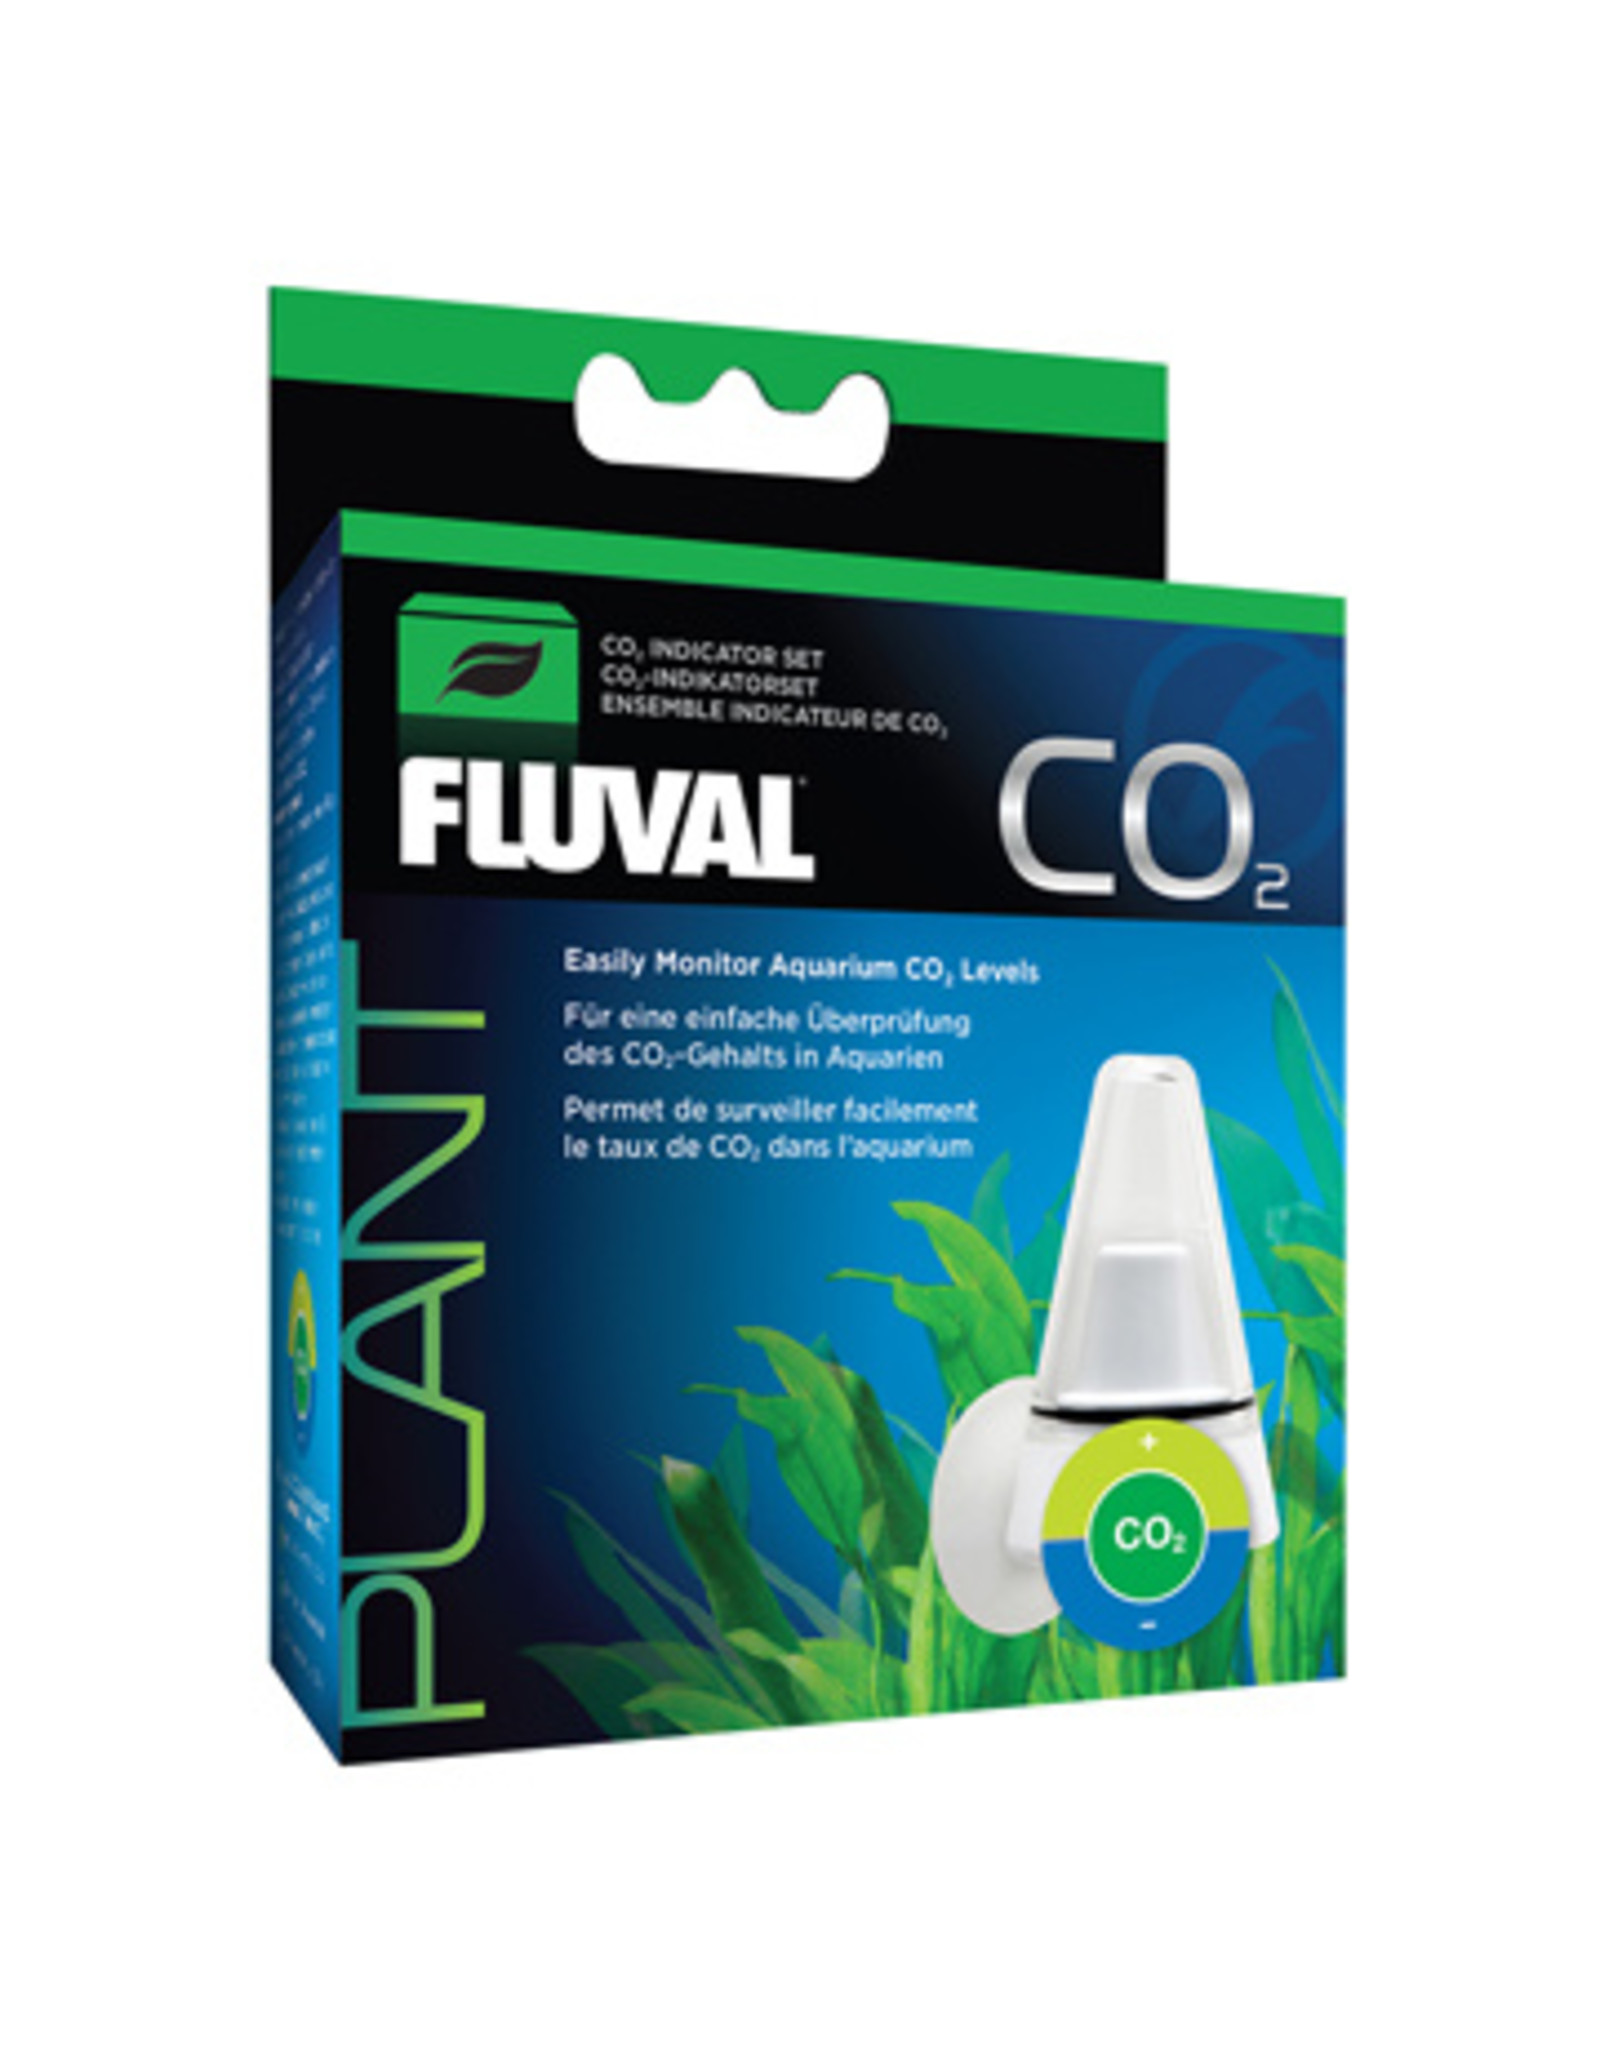 Fluval FLUVAL CO2 Indicator Set